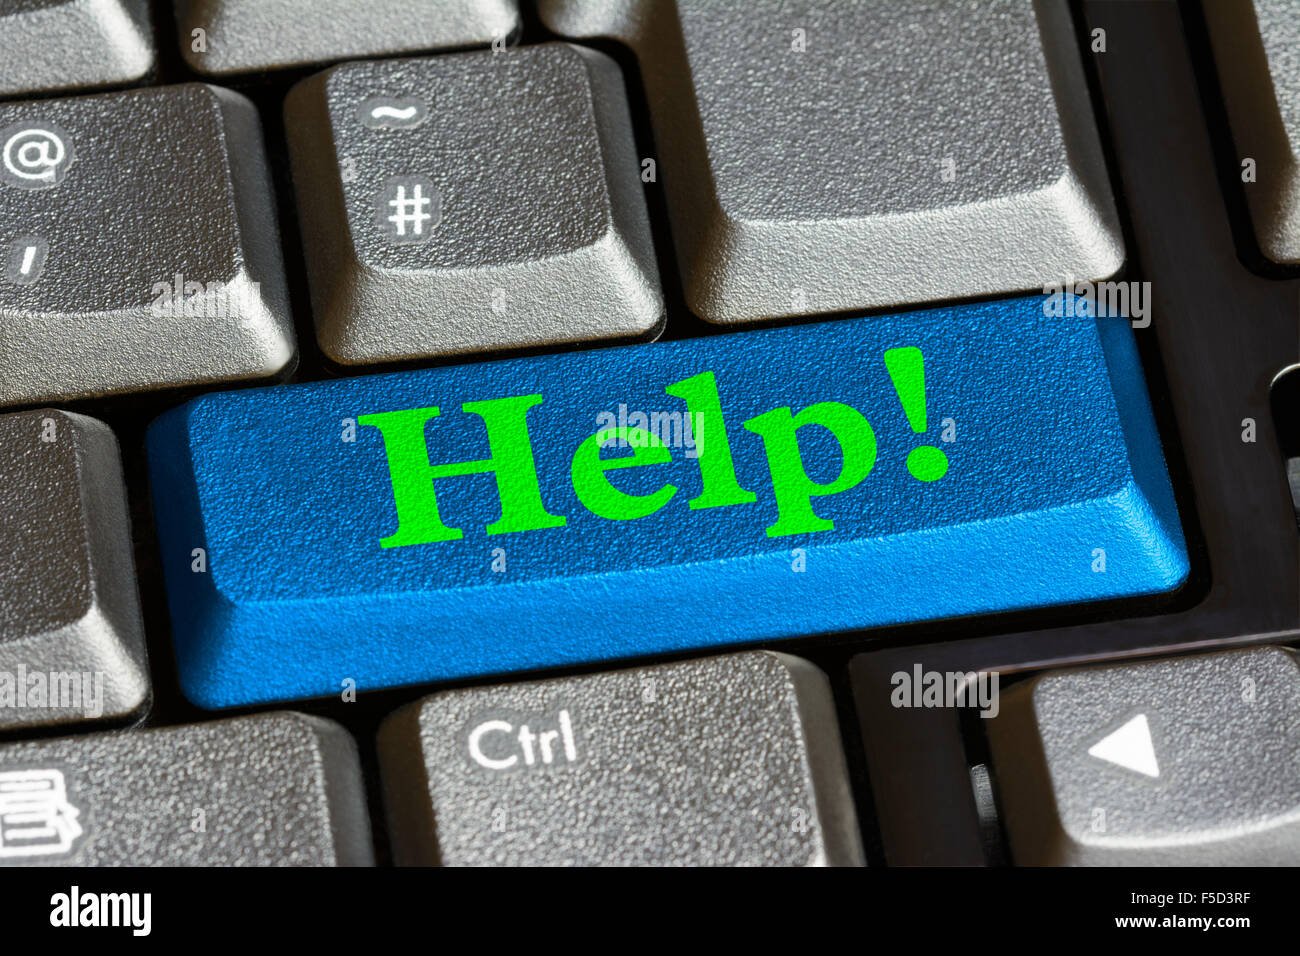 Help button on a computer keyboard. Help concept. - Stock Image